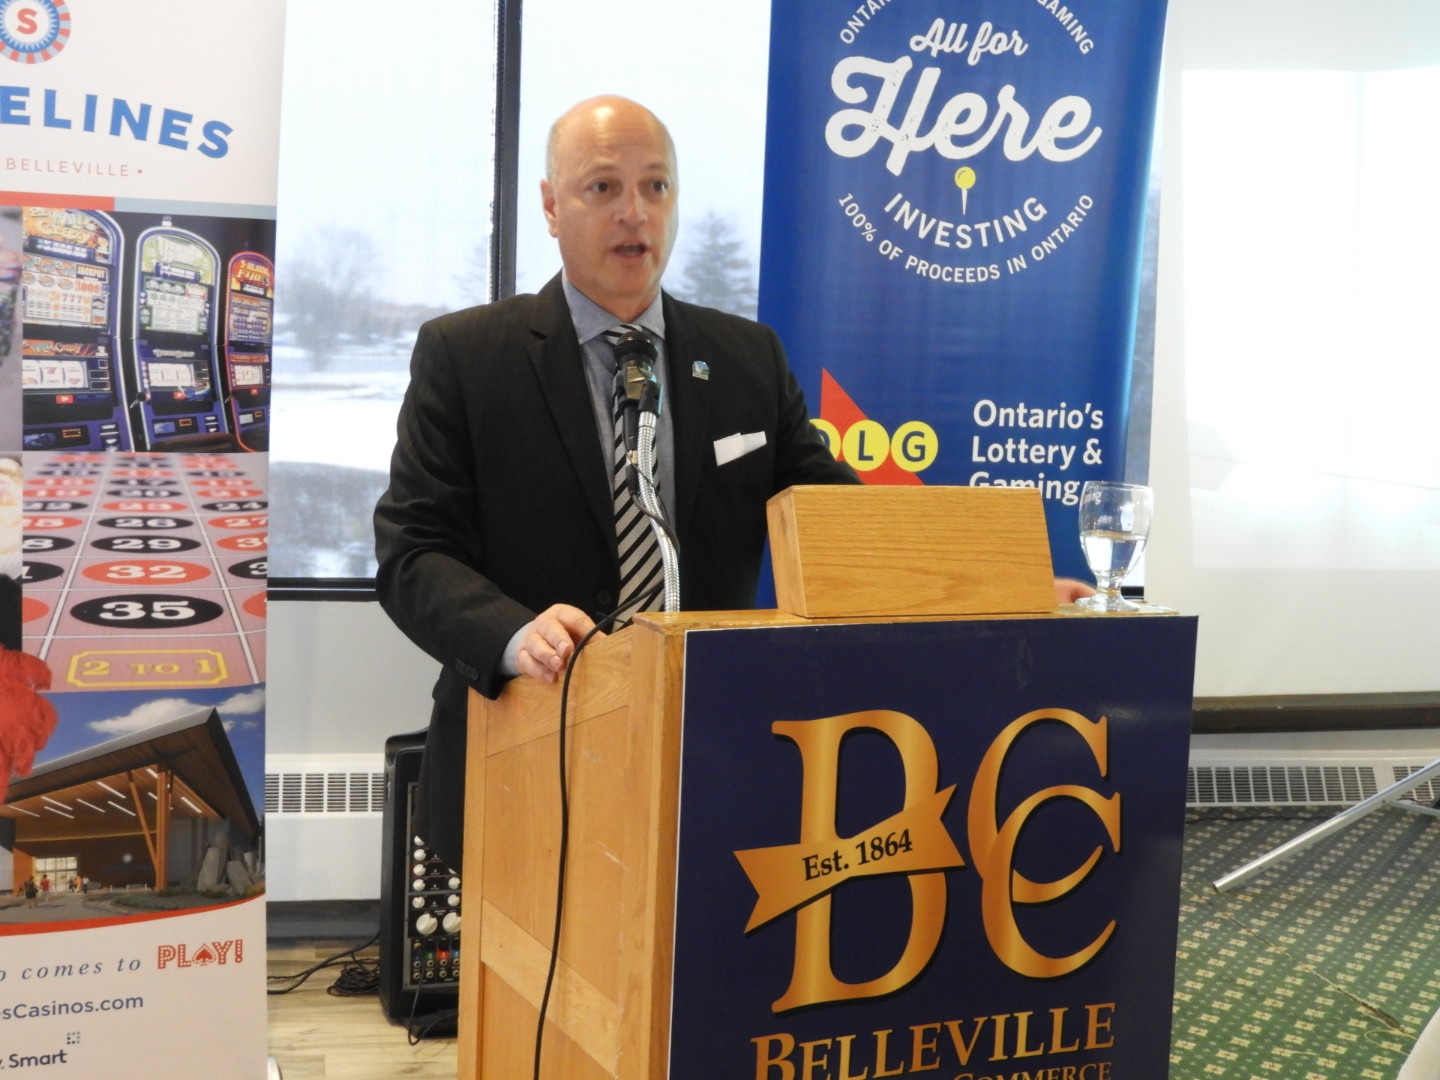 Belleville's Mayor-elect asks for support for priorities